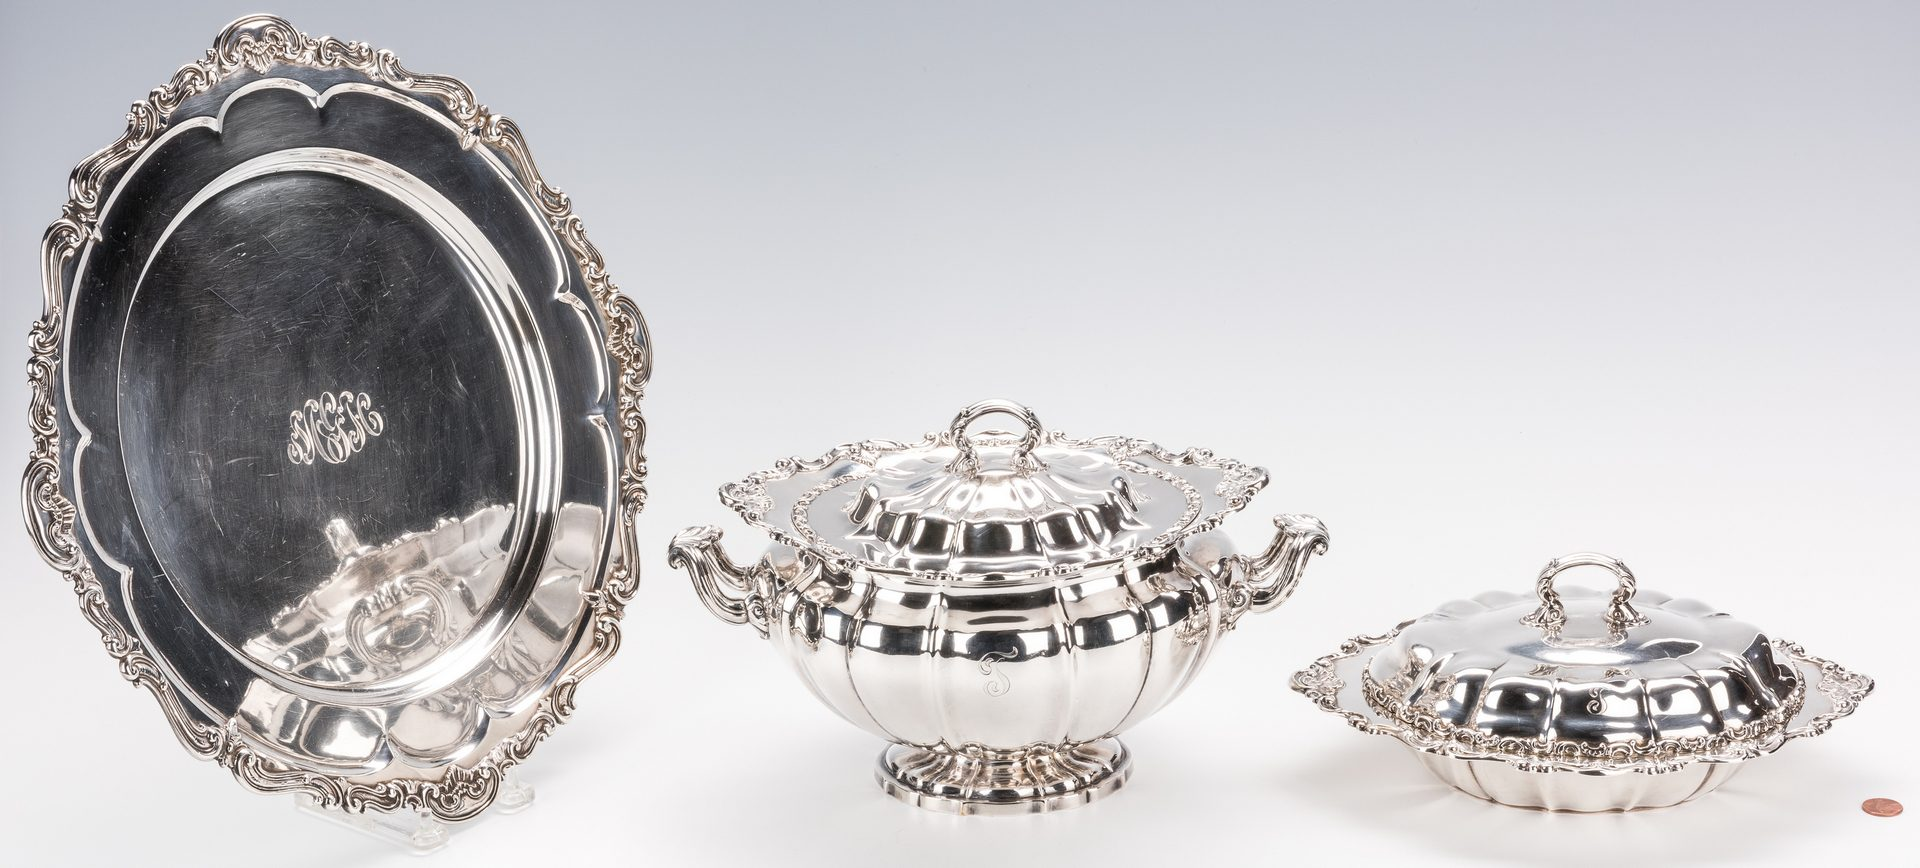 Lot 72: 3 pcs Gorham Sterling Hollowware inc. tray, tureen and covered dish